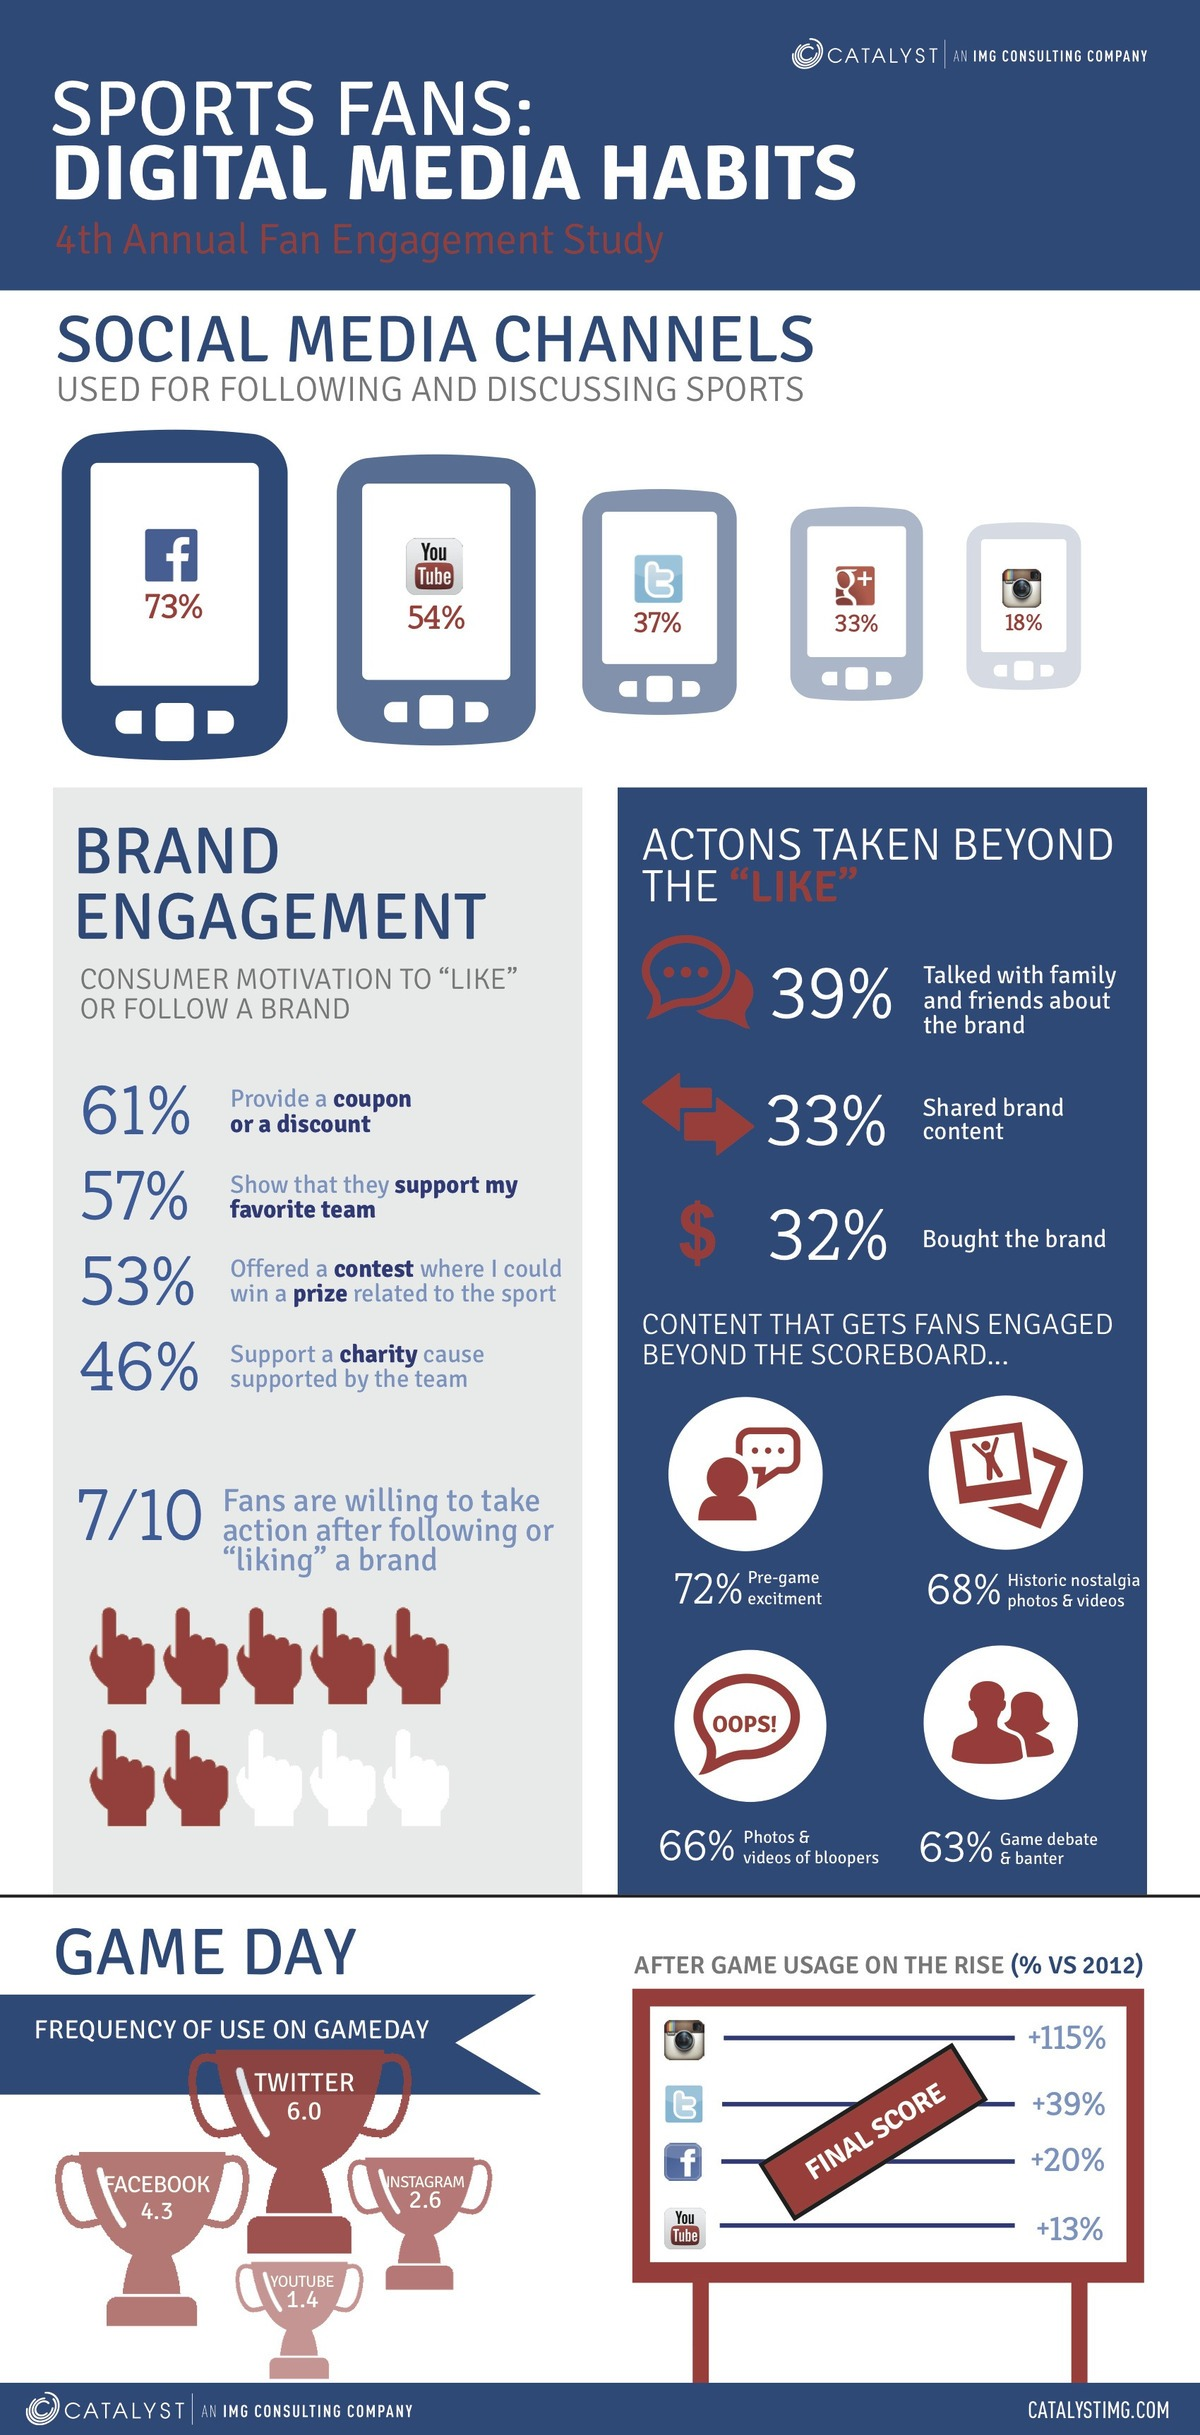 digital media habits and brand engagement of sports fans